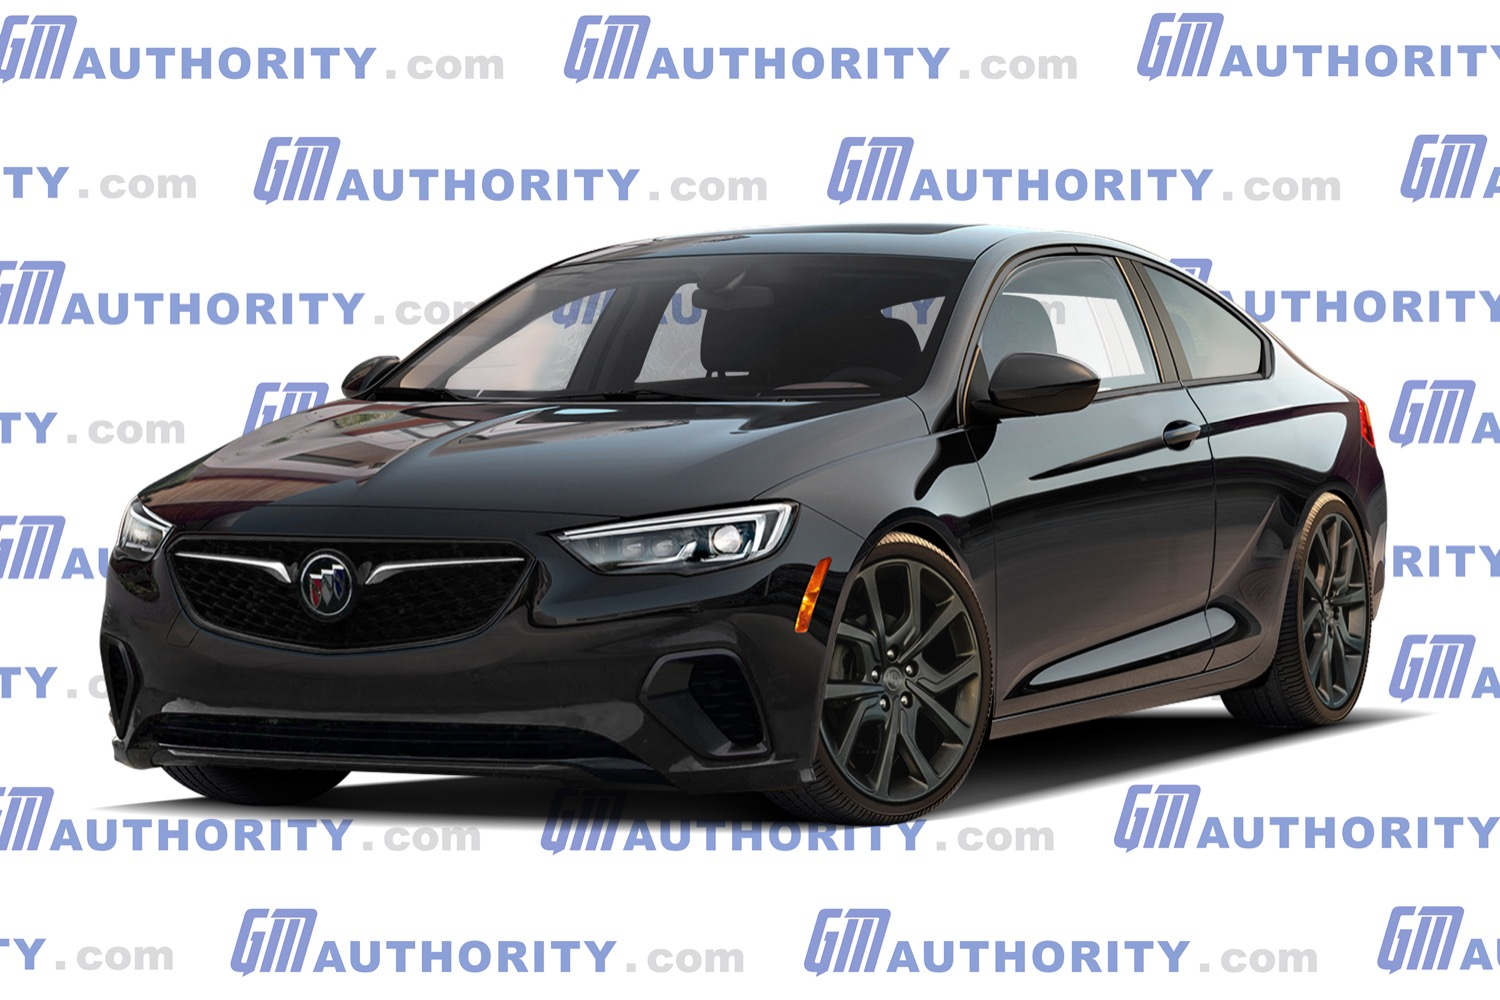 Modern Buick Regal Gnx Rendered | Gm Authority 2022 Buick Regal Pictures, Price, Reviews